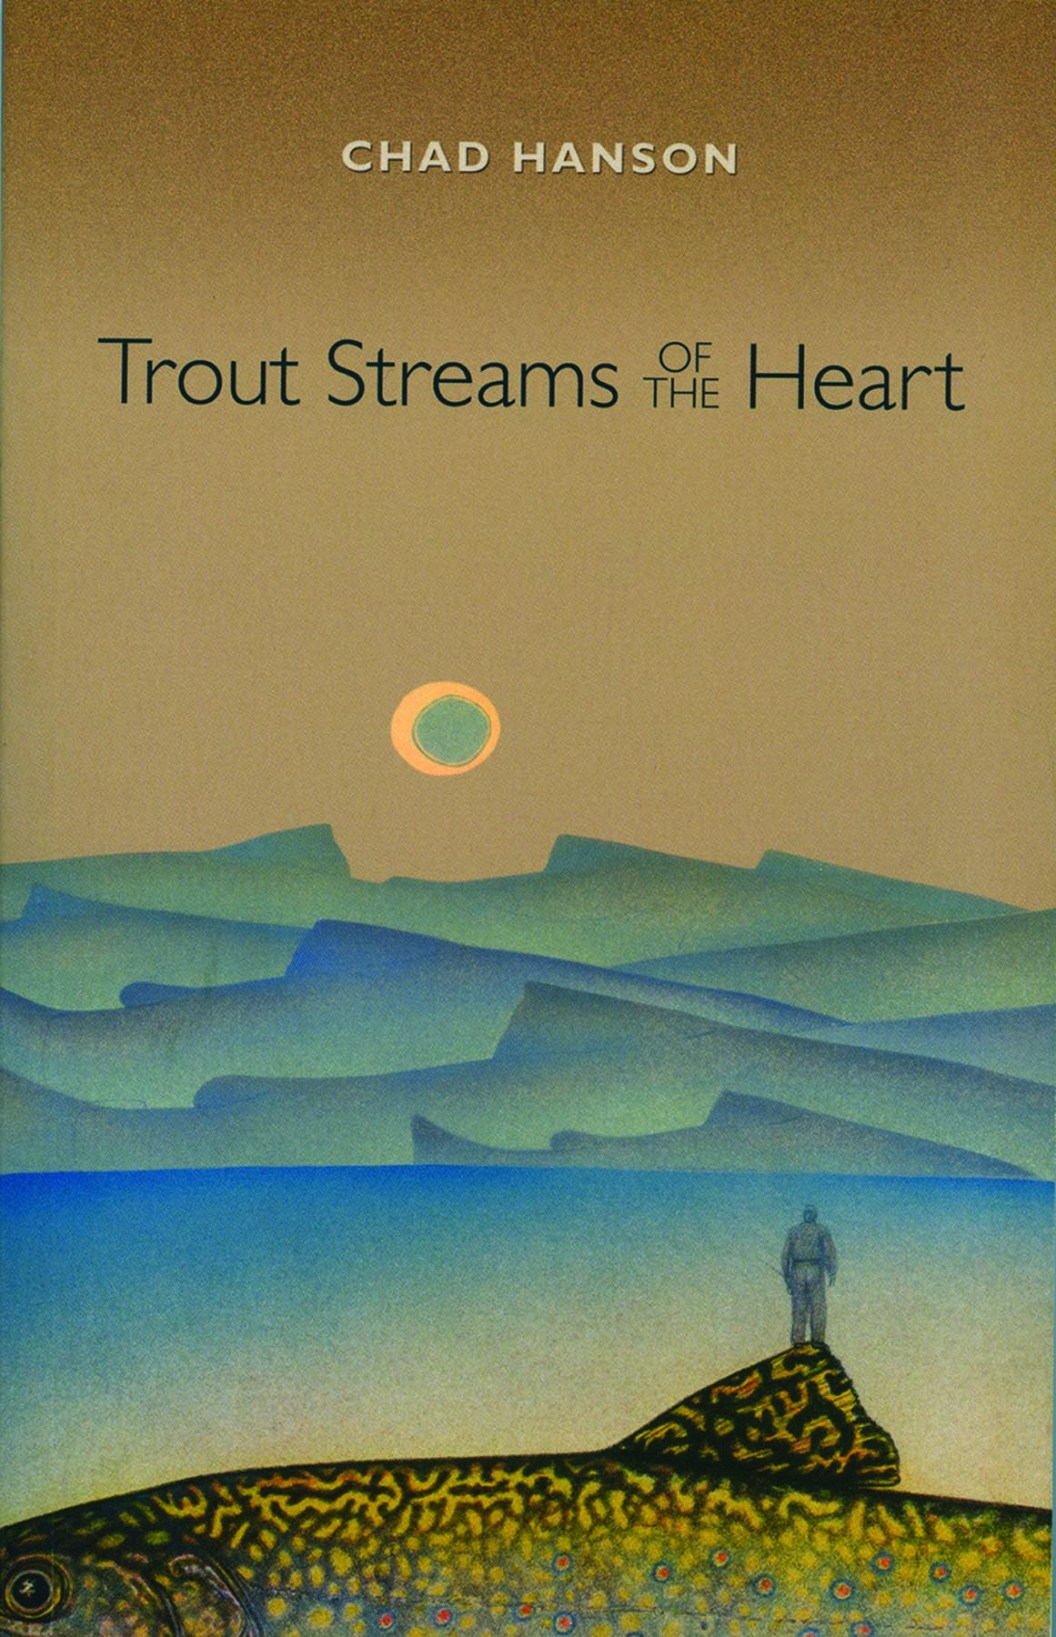 Trout_Streams.book.cover.jpg